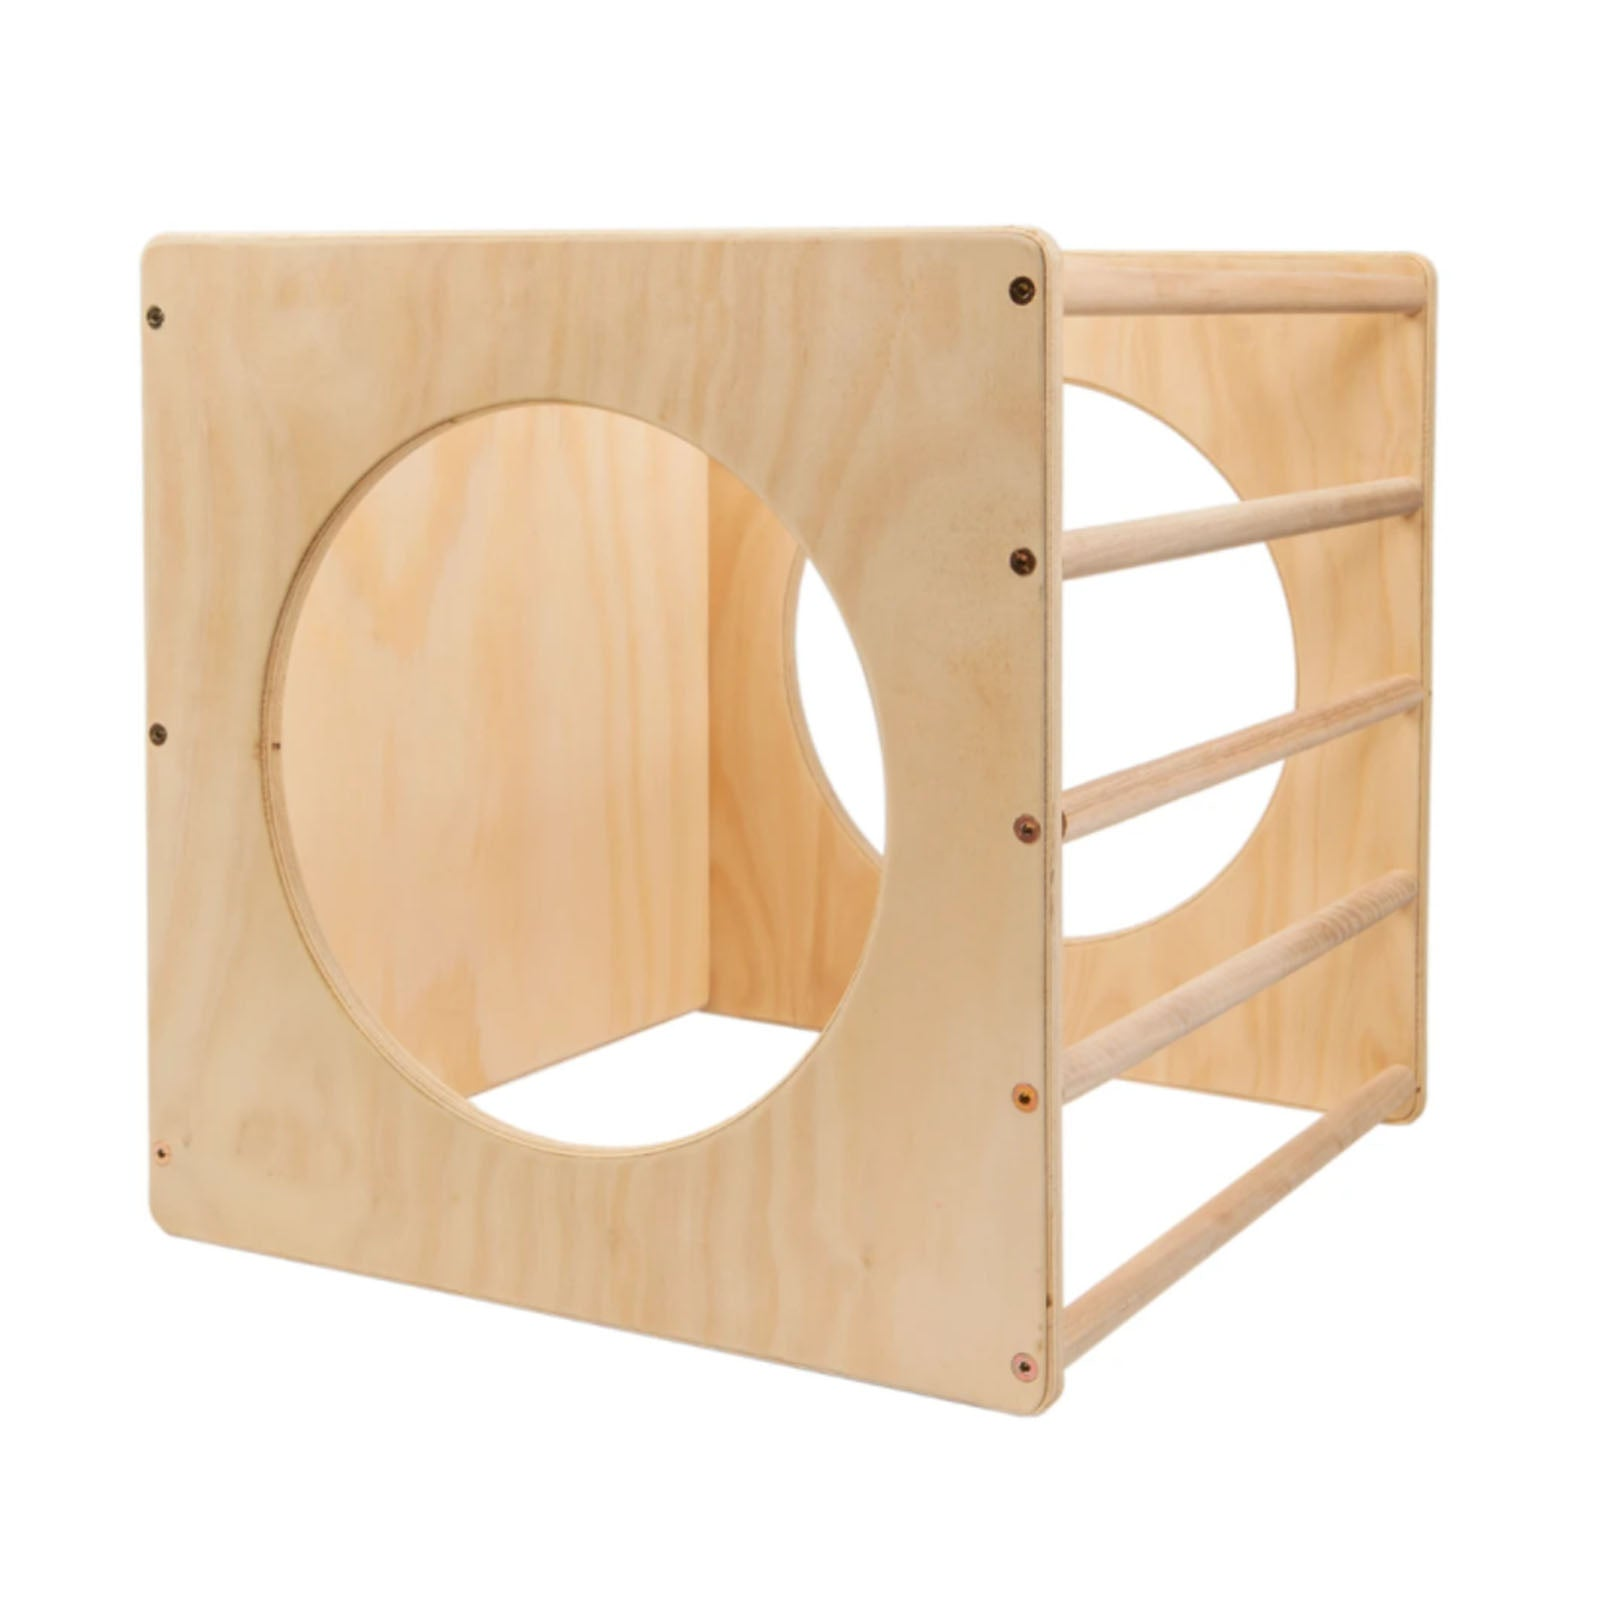 kids Play Cube MH-K04D -  لعب الاطفال مكعب - Shop Online Furniture and Home Decor Store in Dubai, UAE at ebarza